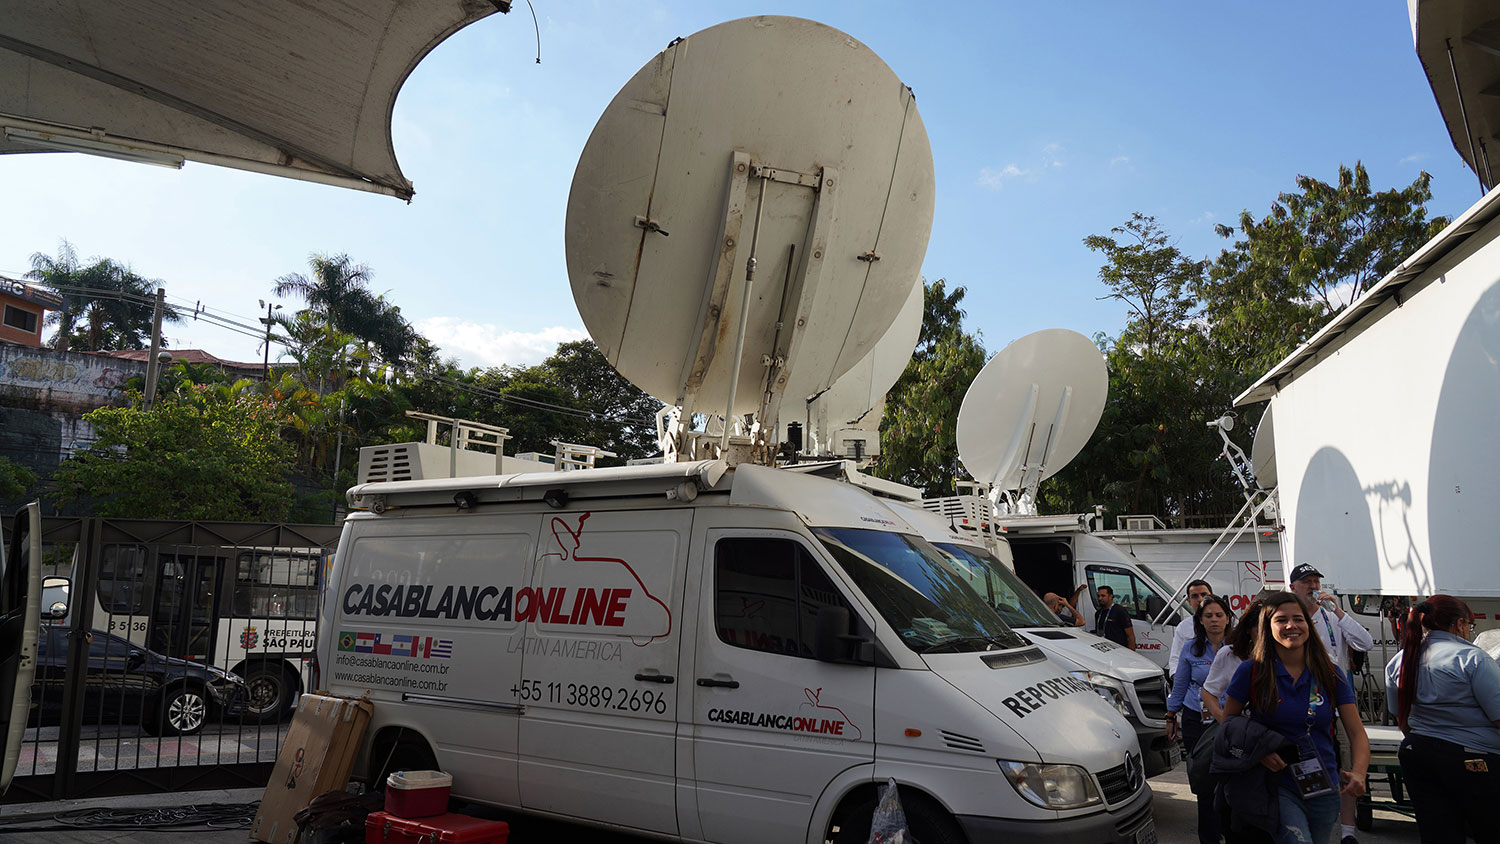 Casablanca Online SNG vans outside Morumbi stadium in Sao Paulo, Brazil